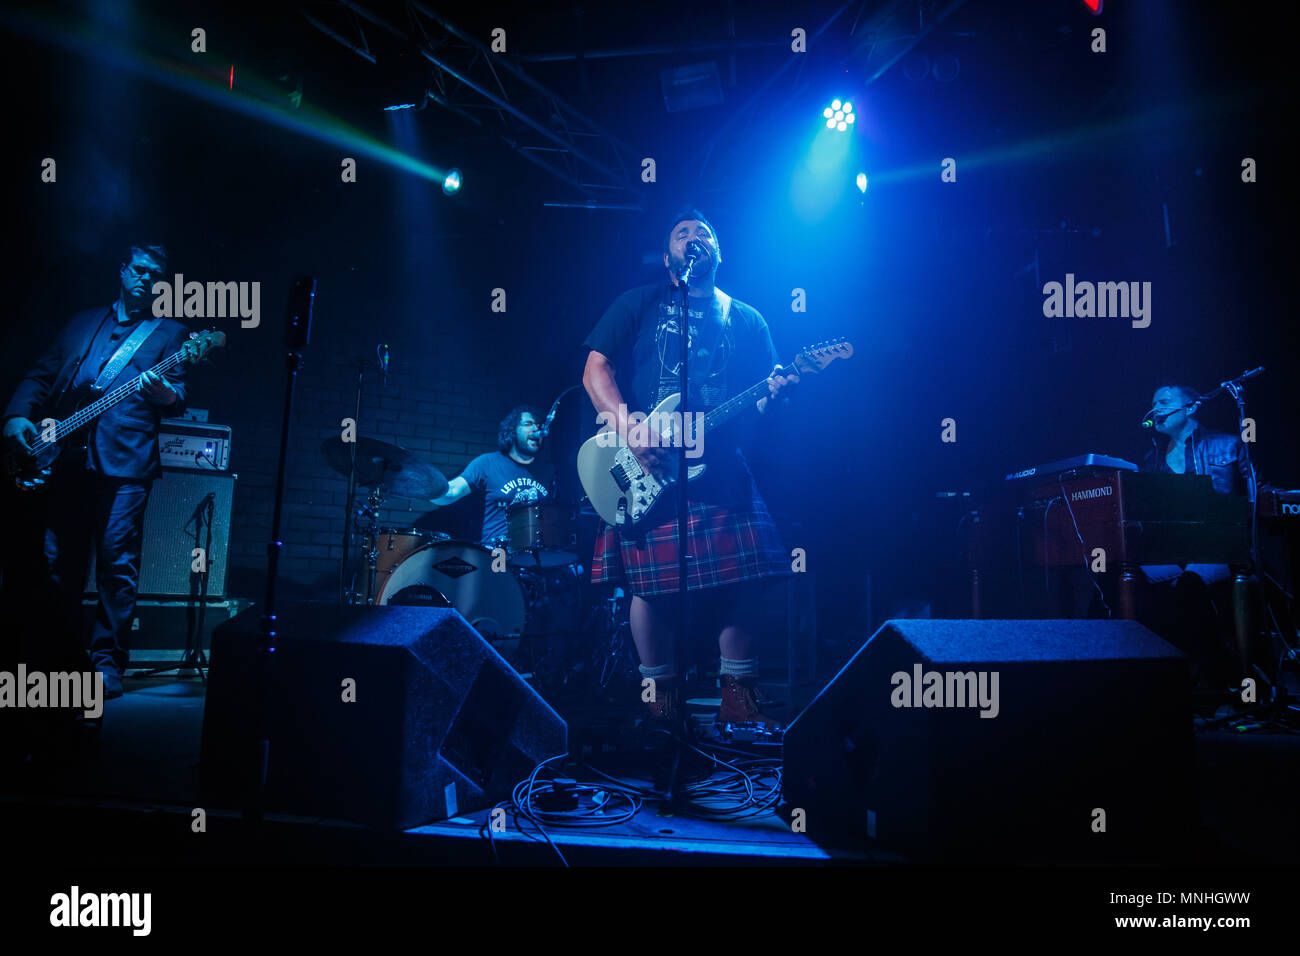 chester uk 18th may 2018 king king perform at the live rooms in